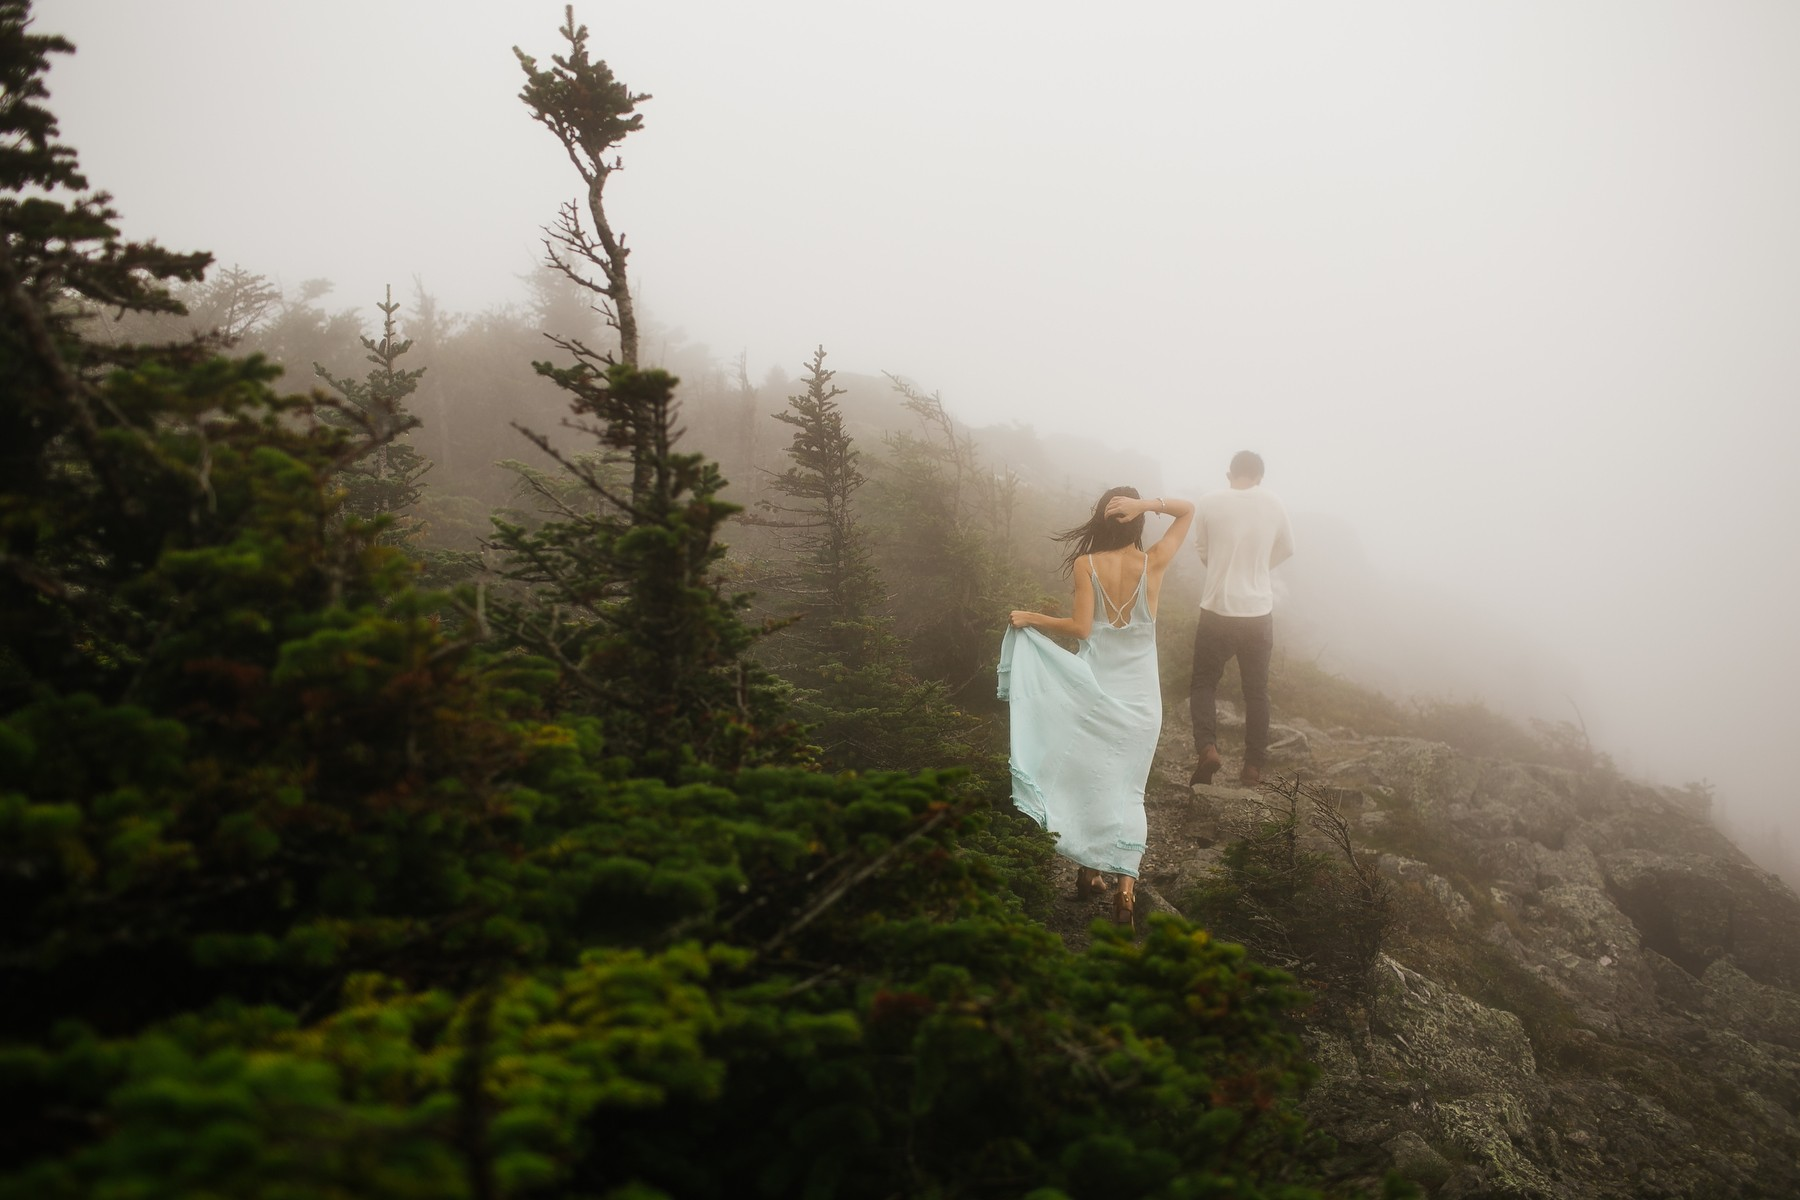 Couple walking on a path in the fog on Mt. Mansfield near Stowe, Vermont.